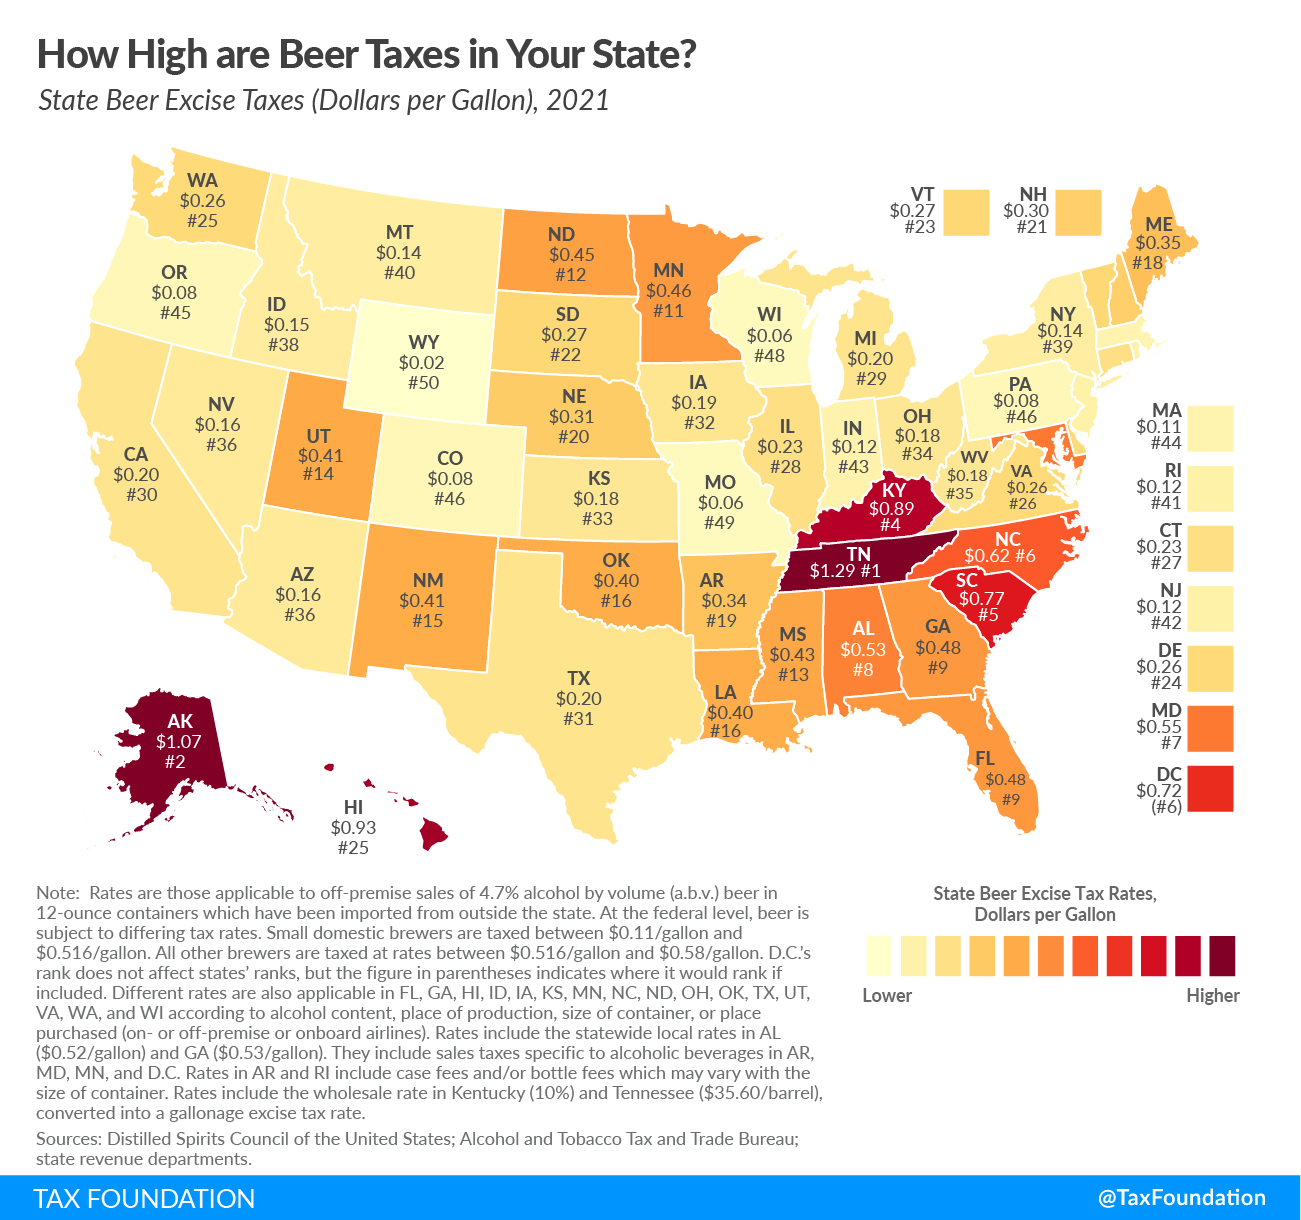 2021 state beer excise tax rates. Compare 2021 state beer taxes (2021 state beer tax rates)